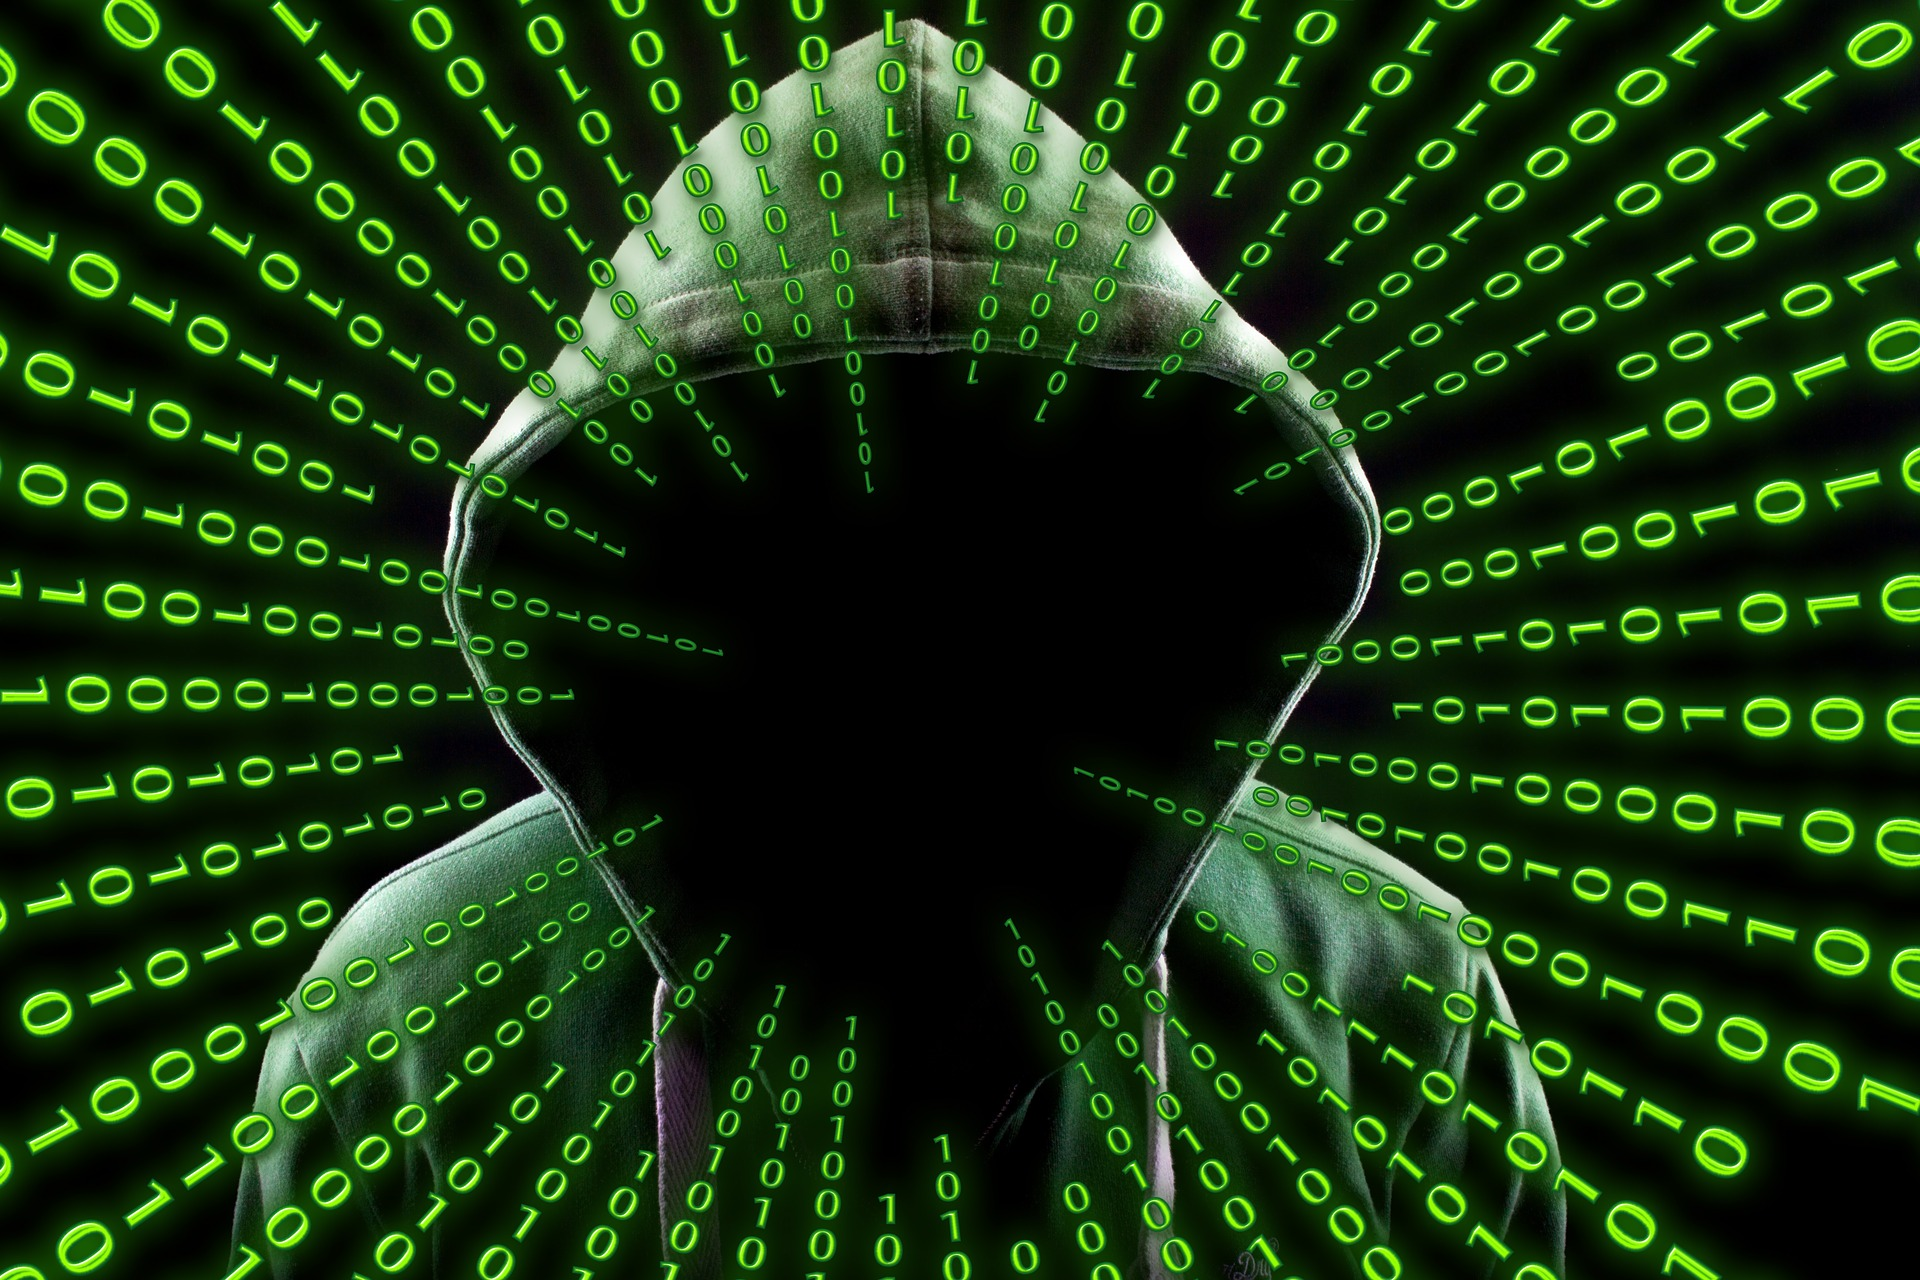 Executives See CyberAttacks As the Biggest Threat to Business